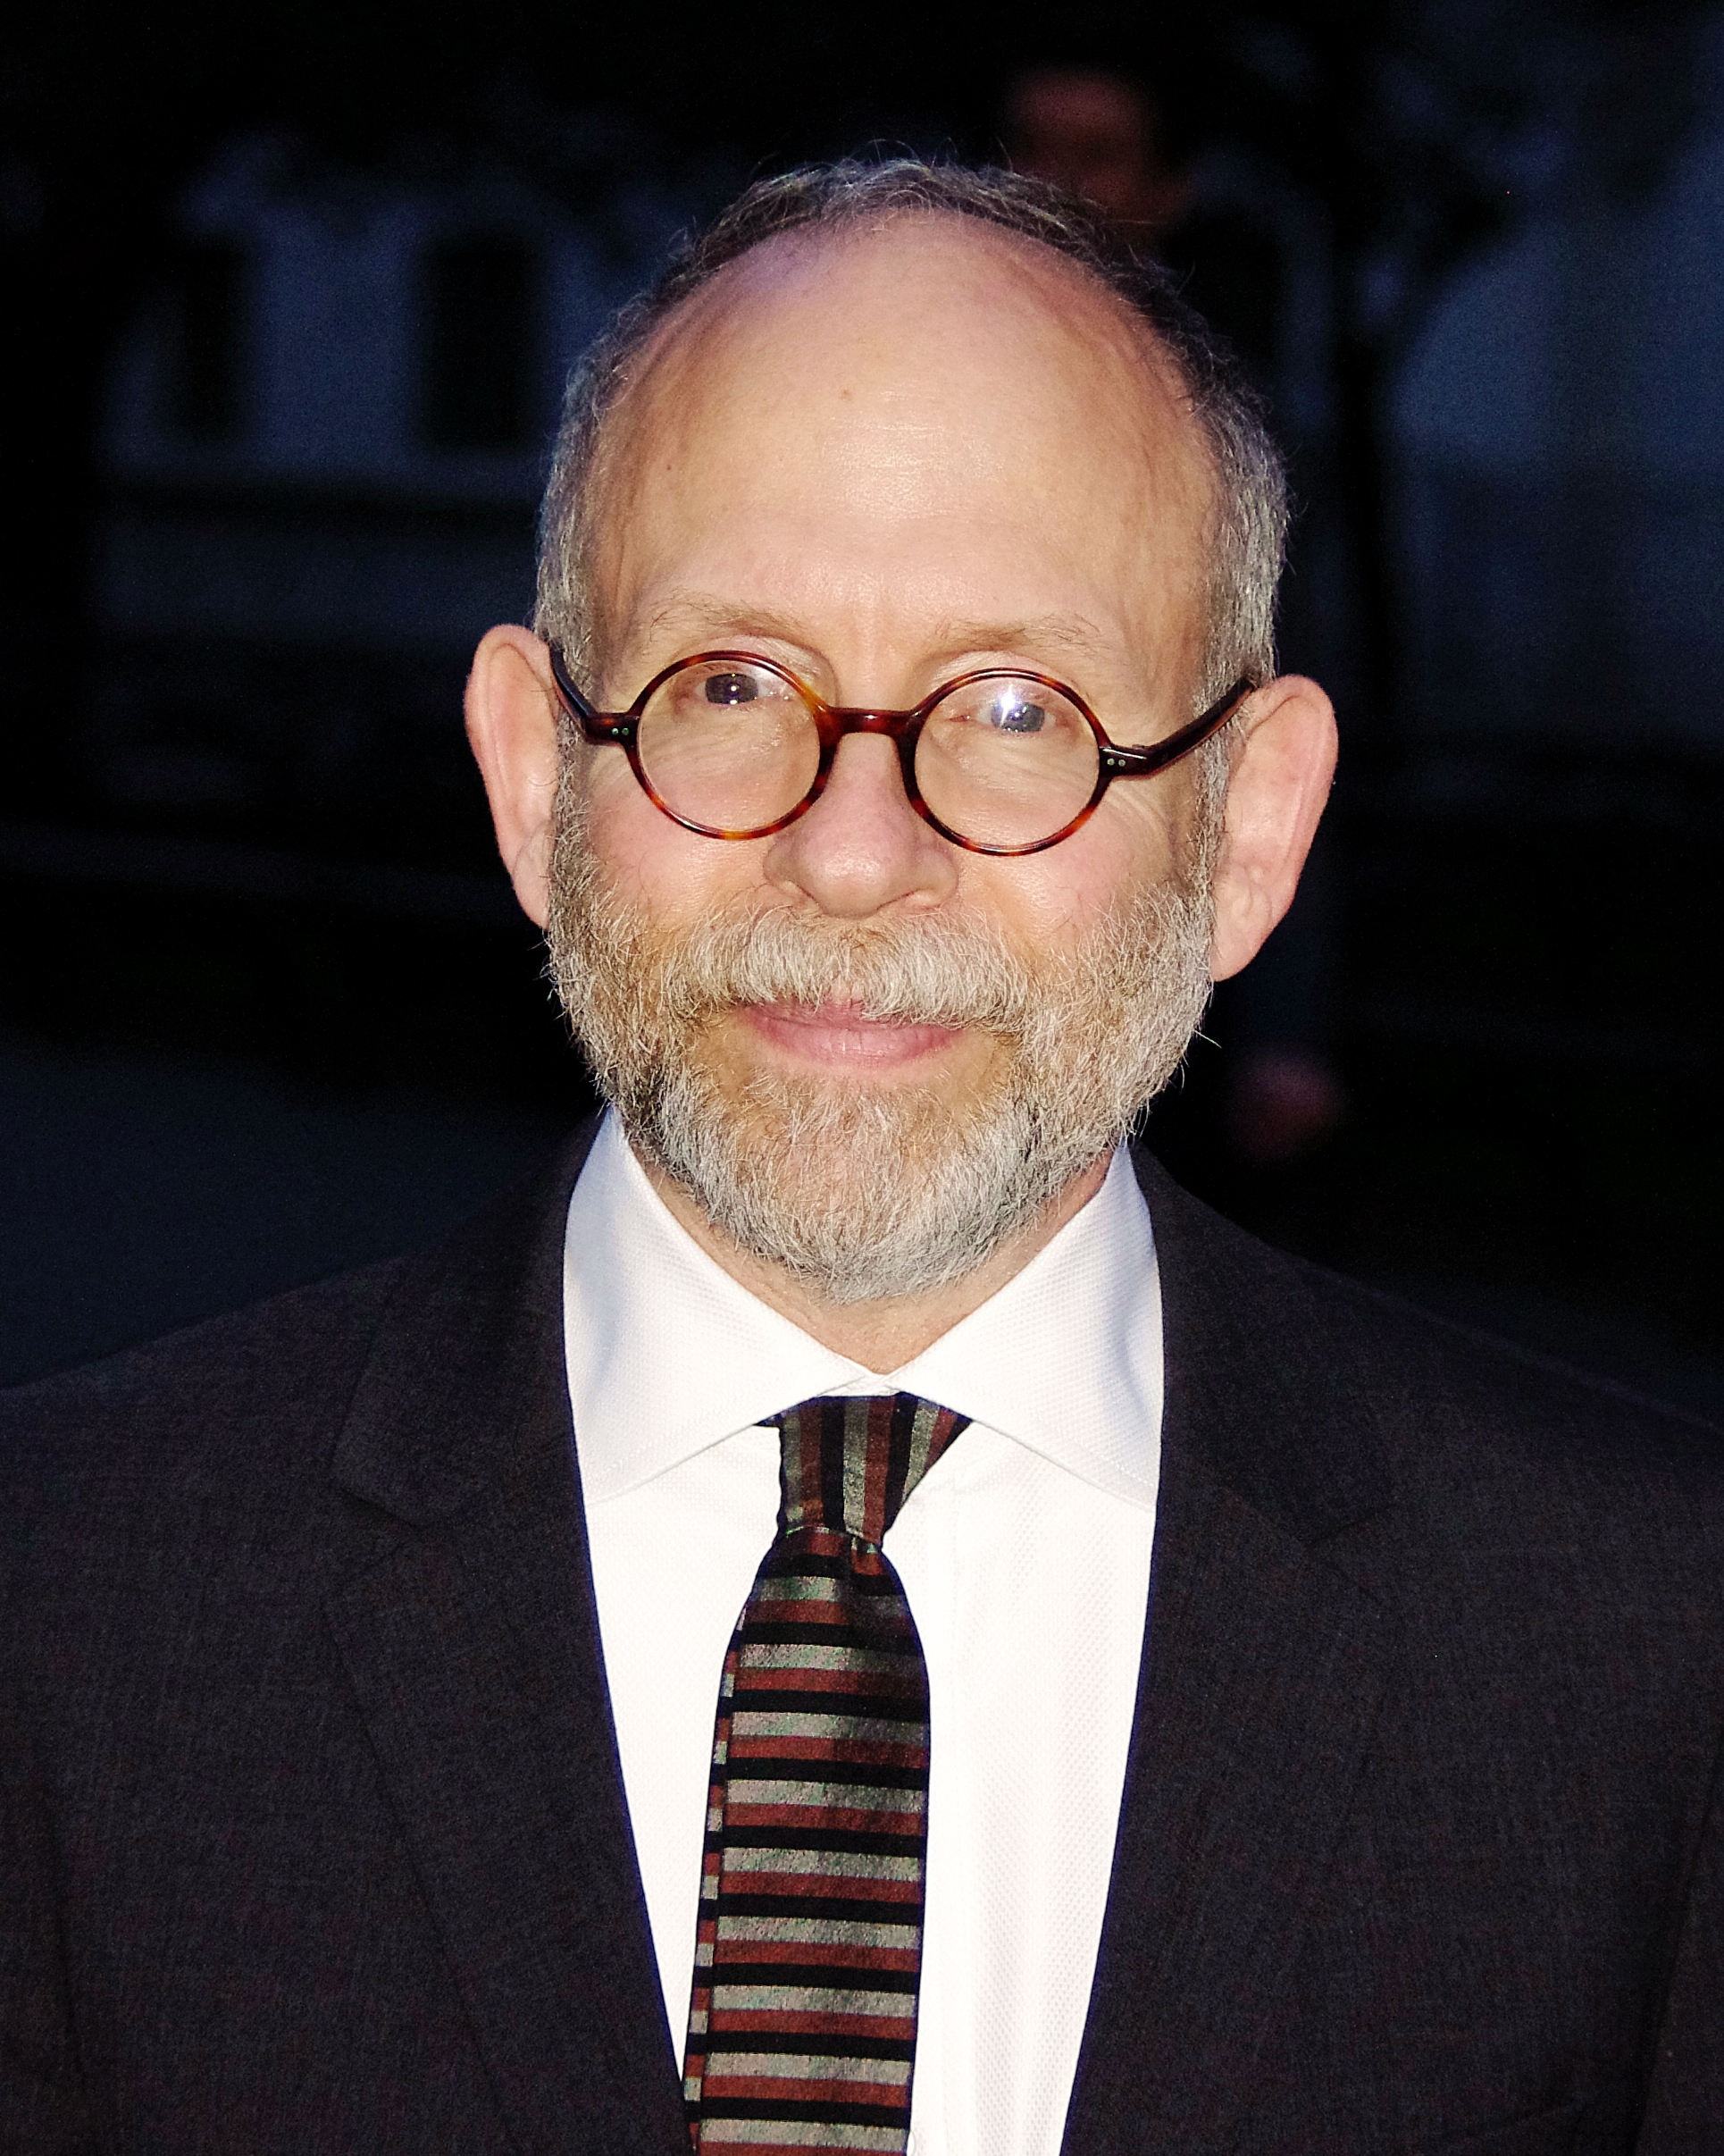 Balaban at the 2012 [[Tribeca Film Festival]]